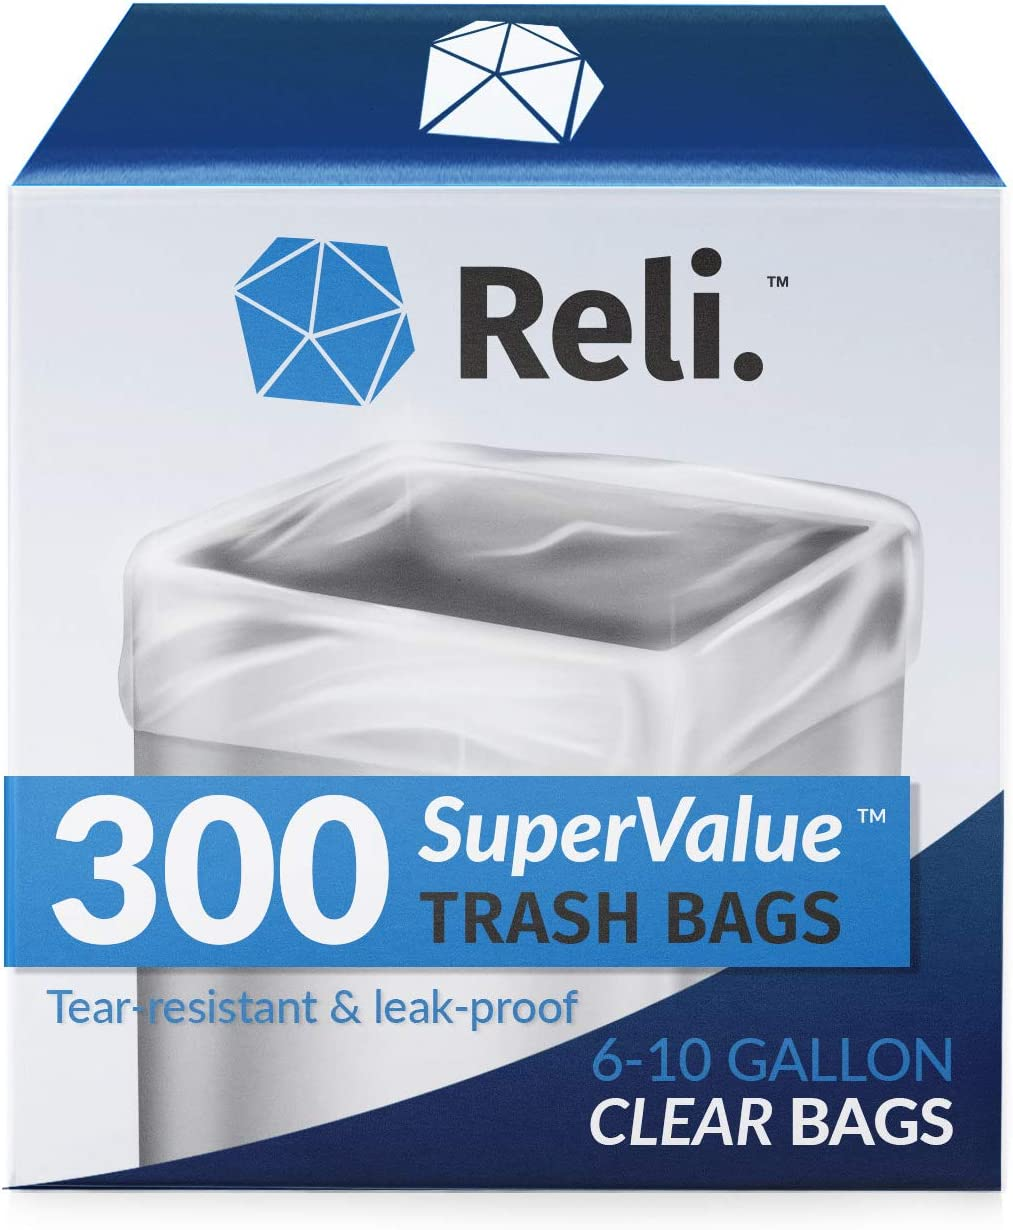 Reli. 6-10 Gallon Trash Bags (300 Count) Clear Garbage Bags 8 Gallon, 9 Gallon Compatible - Office Trash Can Liners/Garbage Bag (6 Gal - 10 Gal Capacity), Clear